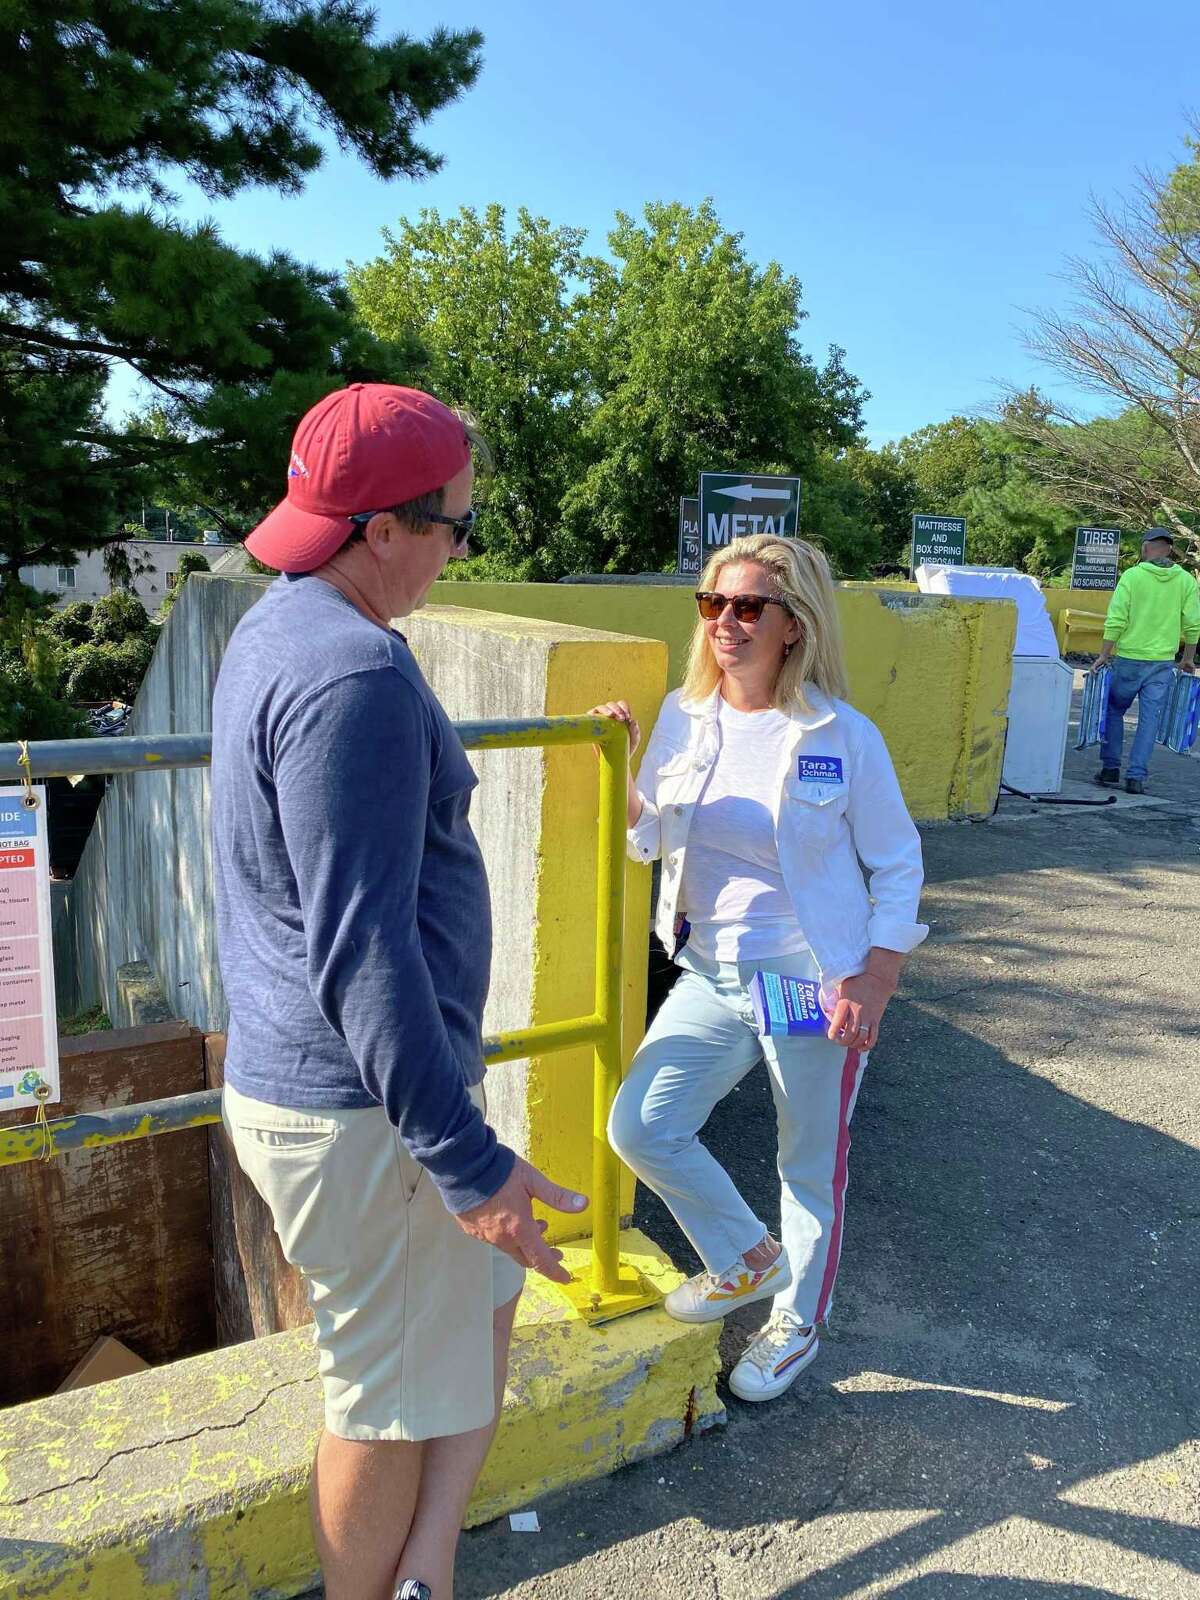 A flood-effected resident shows first selectman candidate Tara Ochman a video of previous flooding during a tour of residential damage.